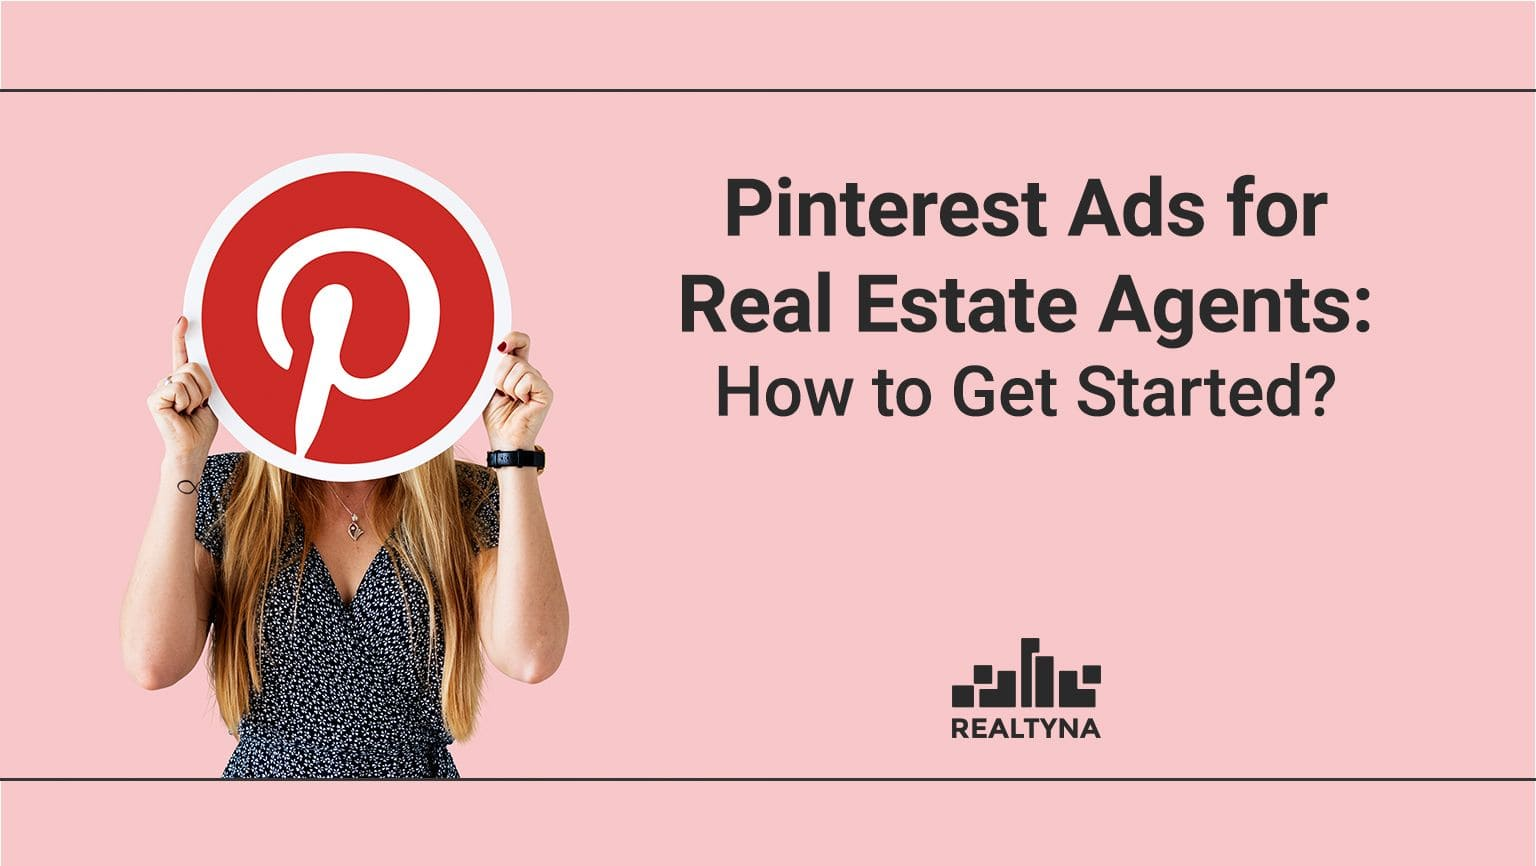 Pinterest Ads for Real Estate Agents: How to Get Started?